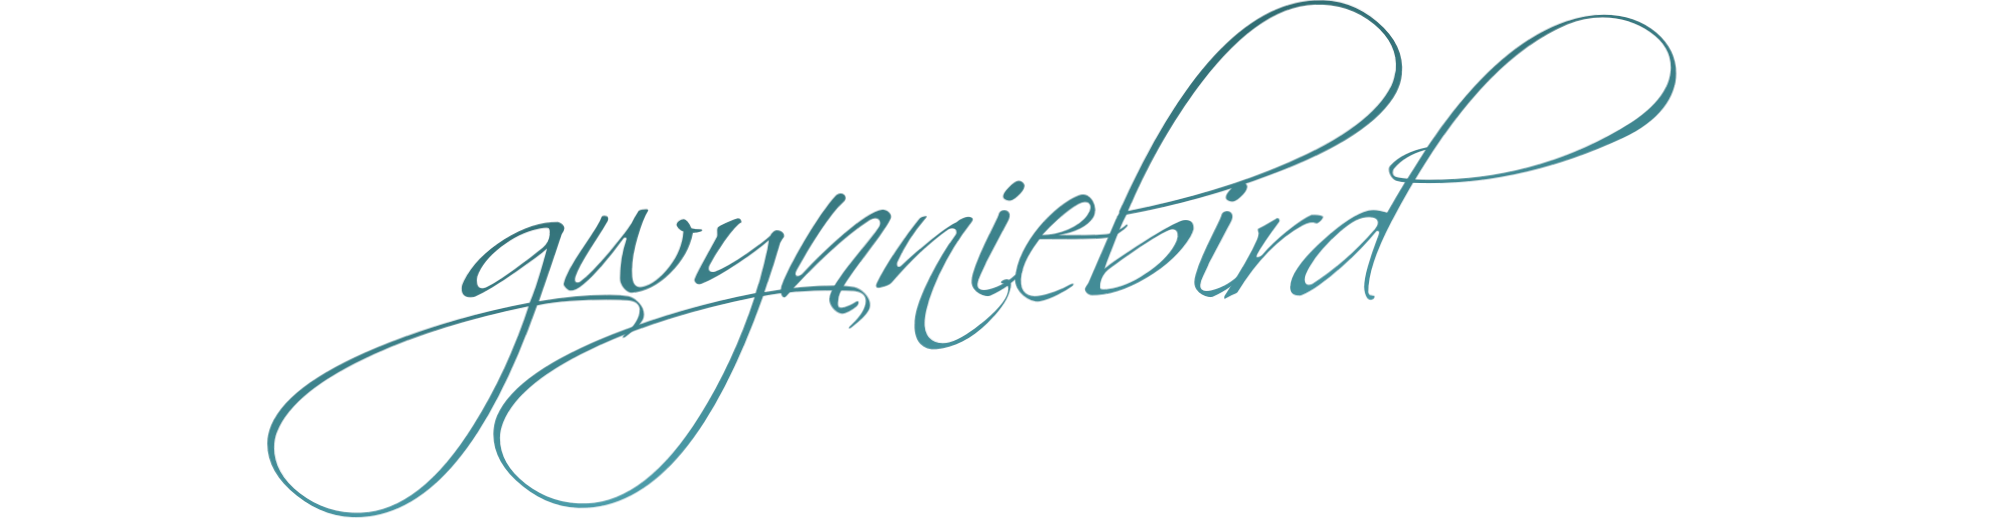 cursive lettering that is teal and reads gwynnie bird